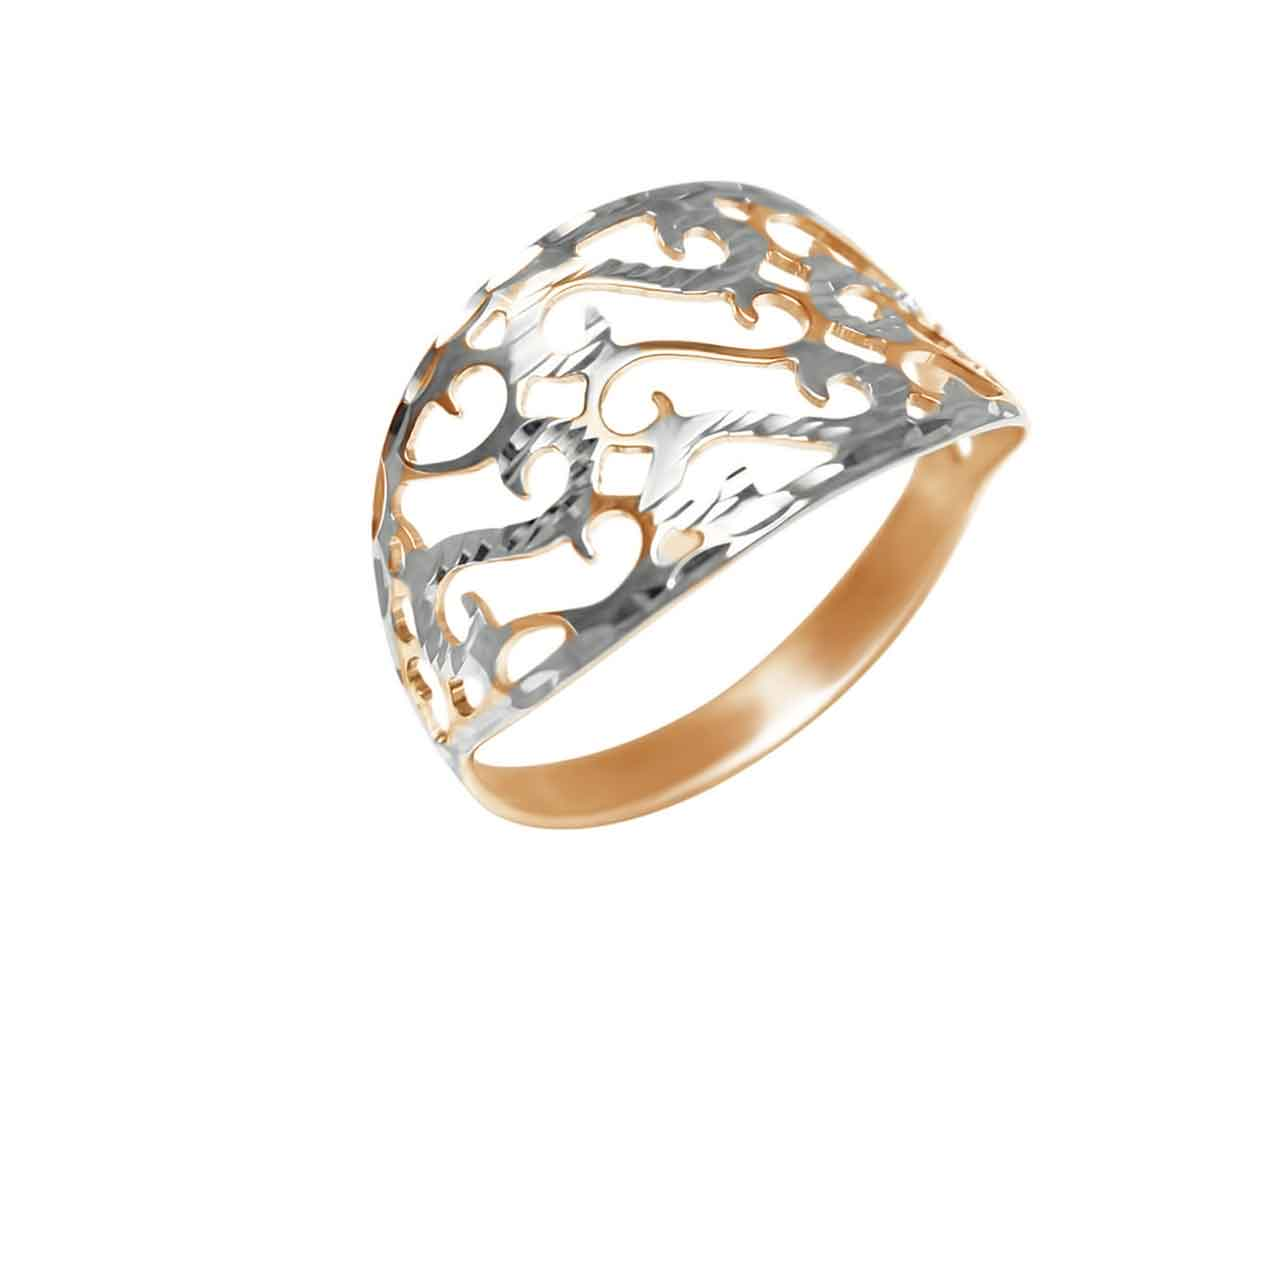 Ring with Cutwork Accents